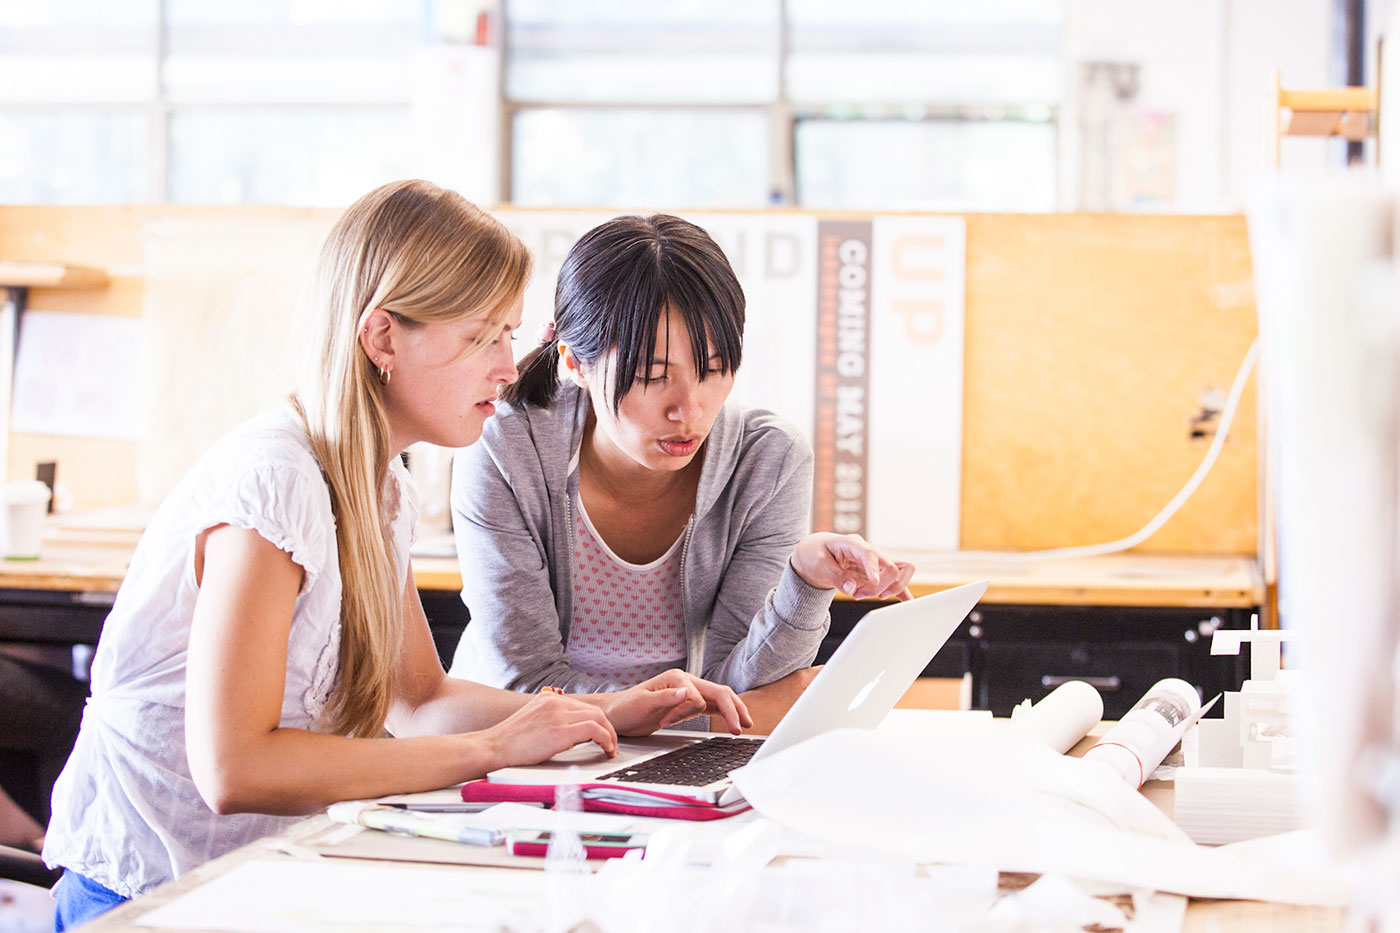 college homework done online College can be a very stressful time there is such a big leap from high school to college that many students find themselves getting overwhelmed.